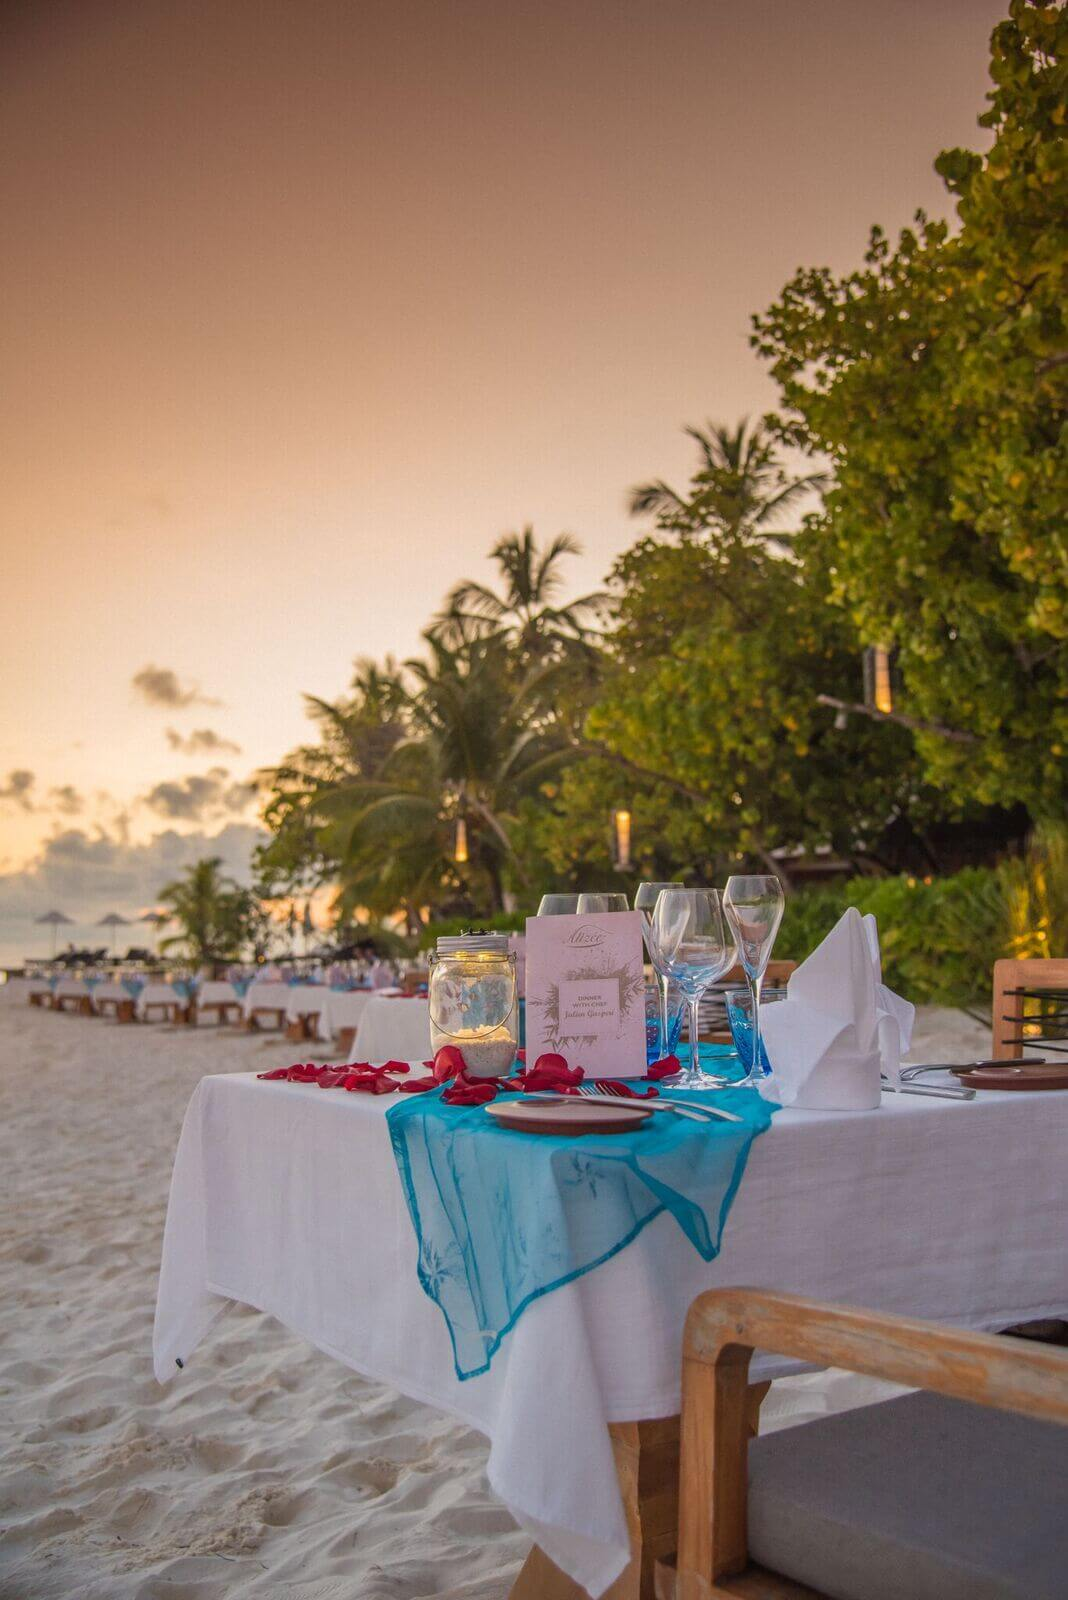 Dinner on the beach Constance Moofushi